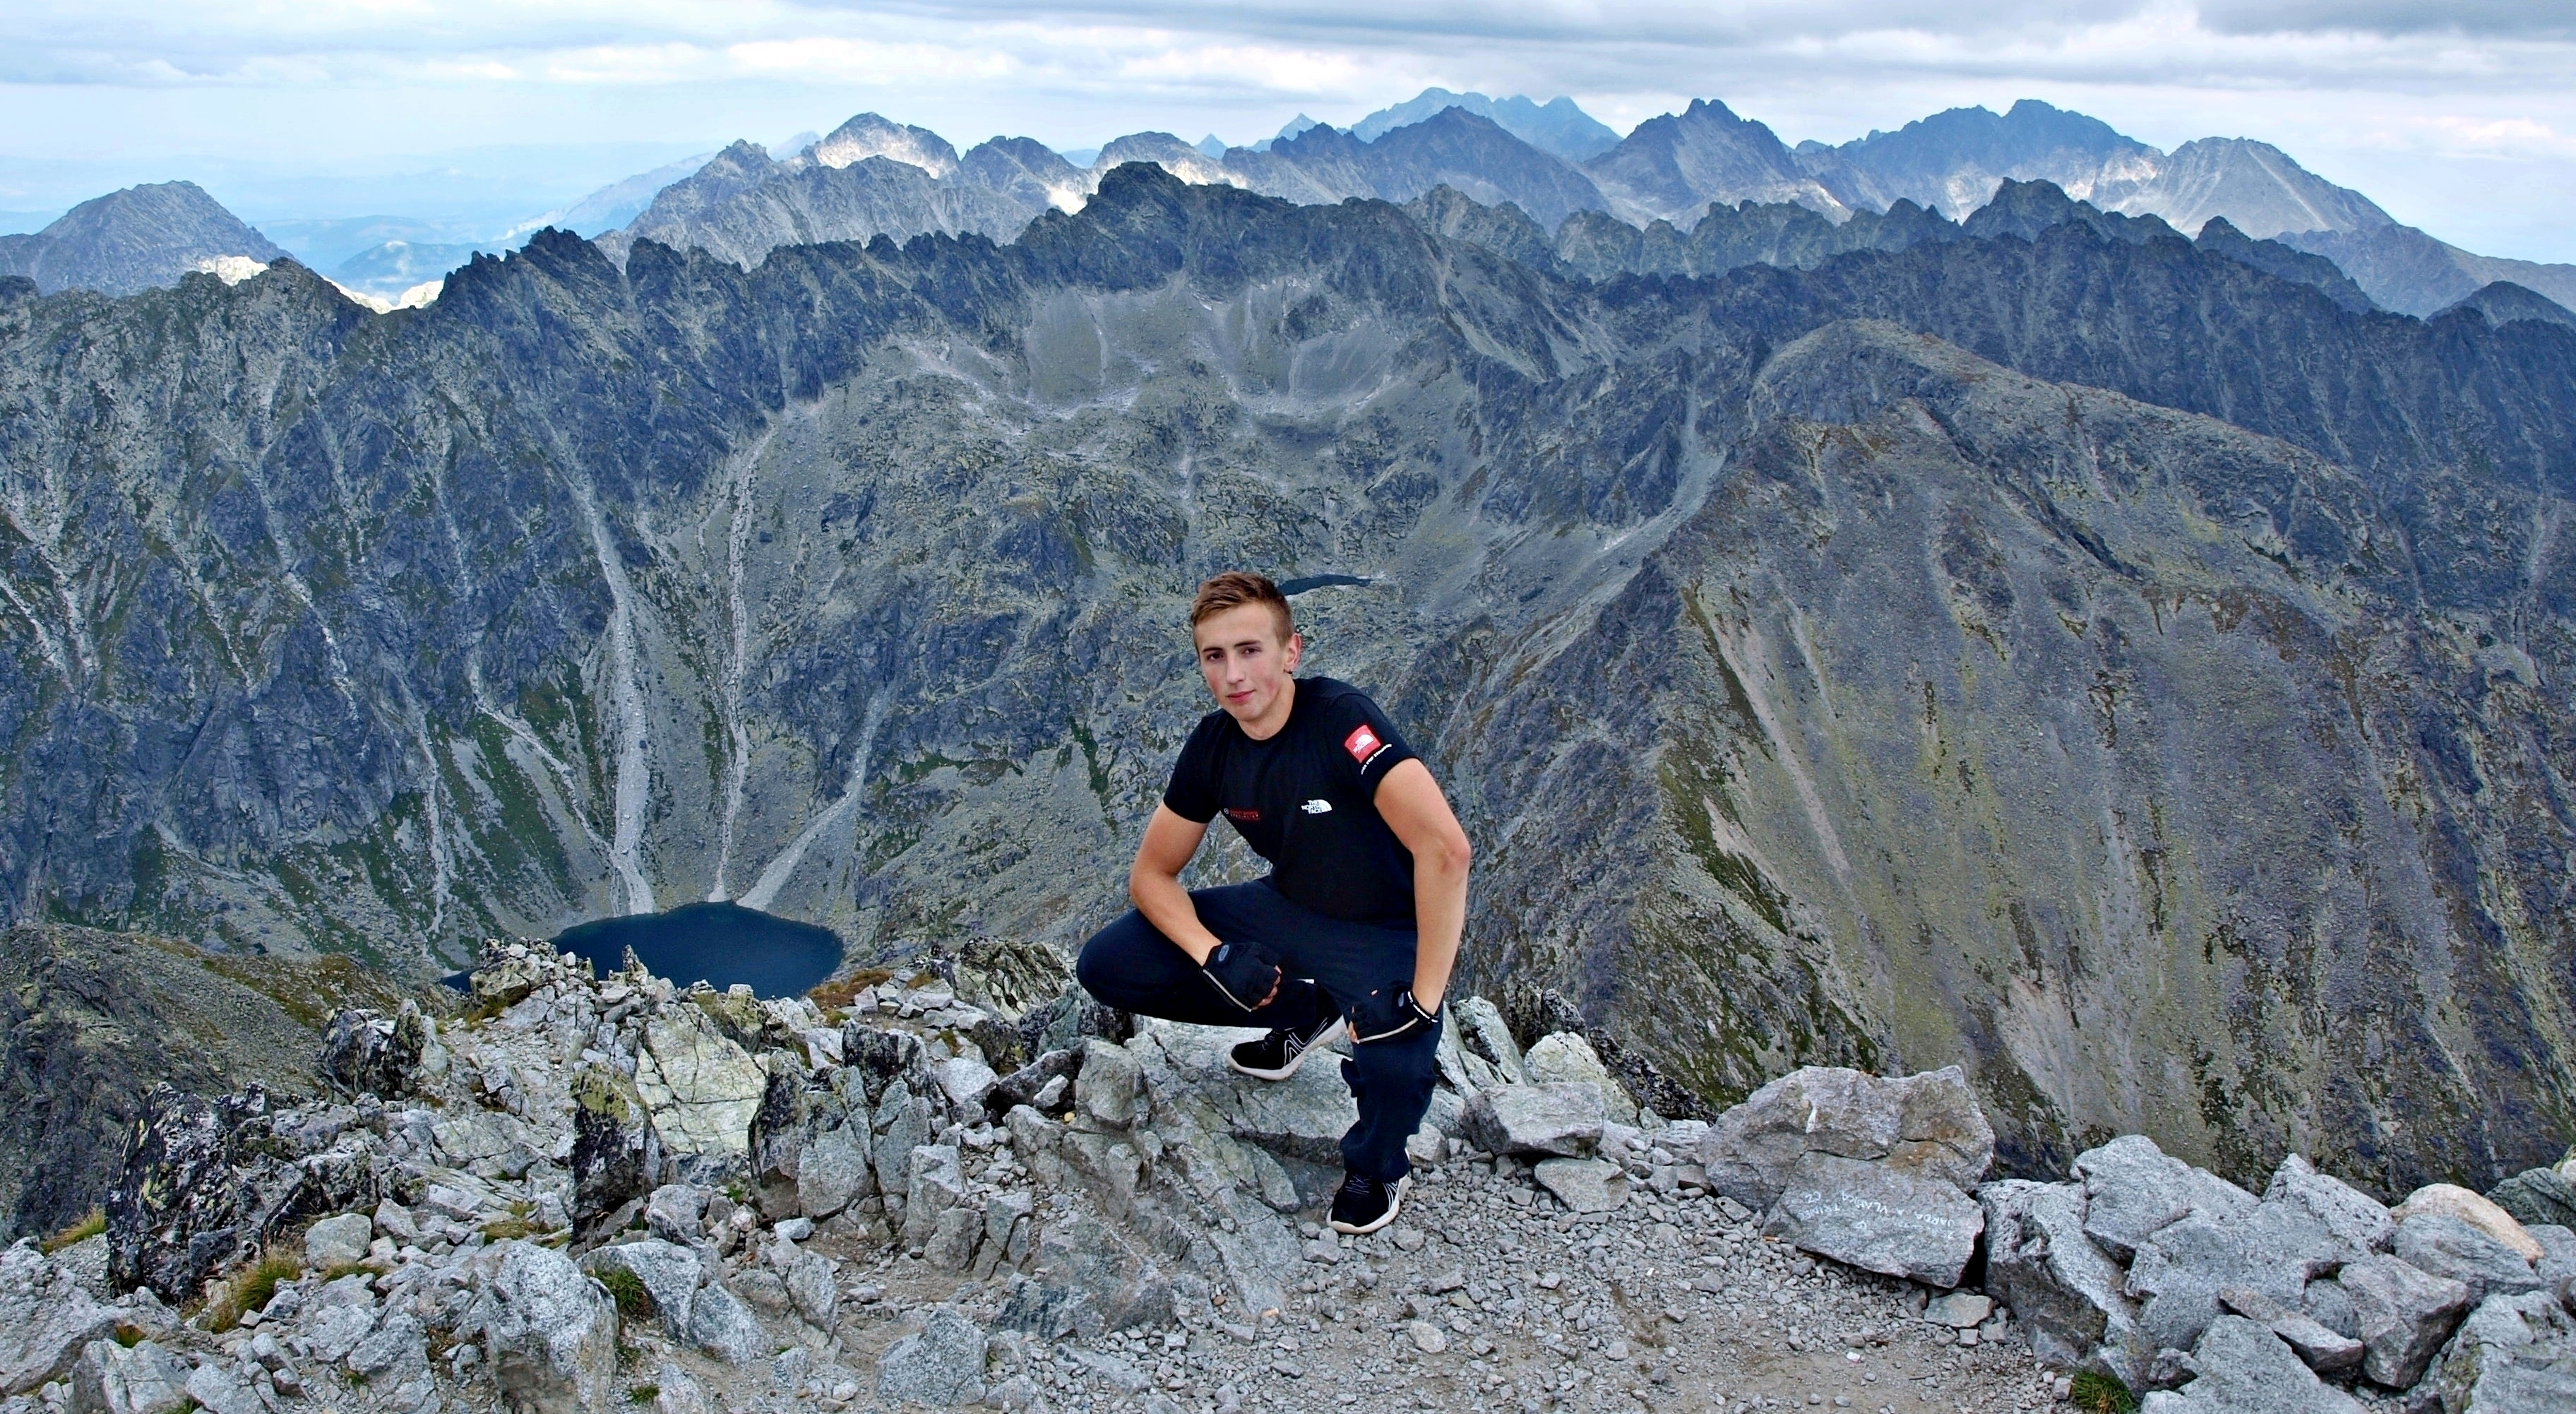 František Kekely on Kriváň in High Tatras, Slovakia.